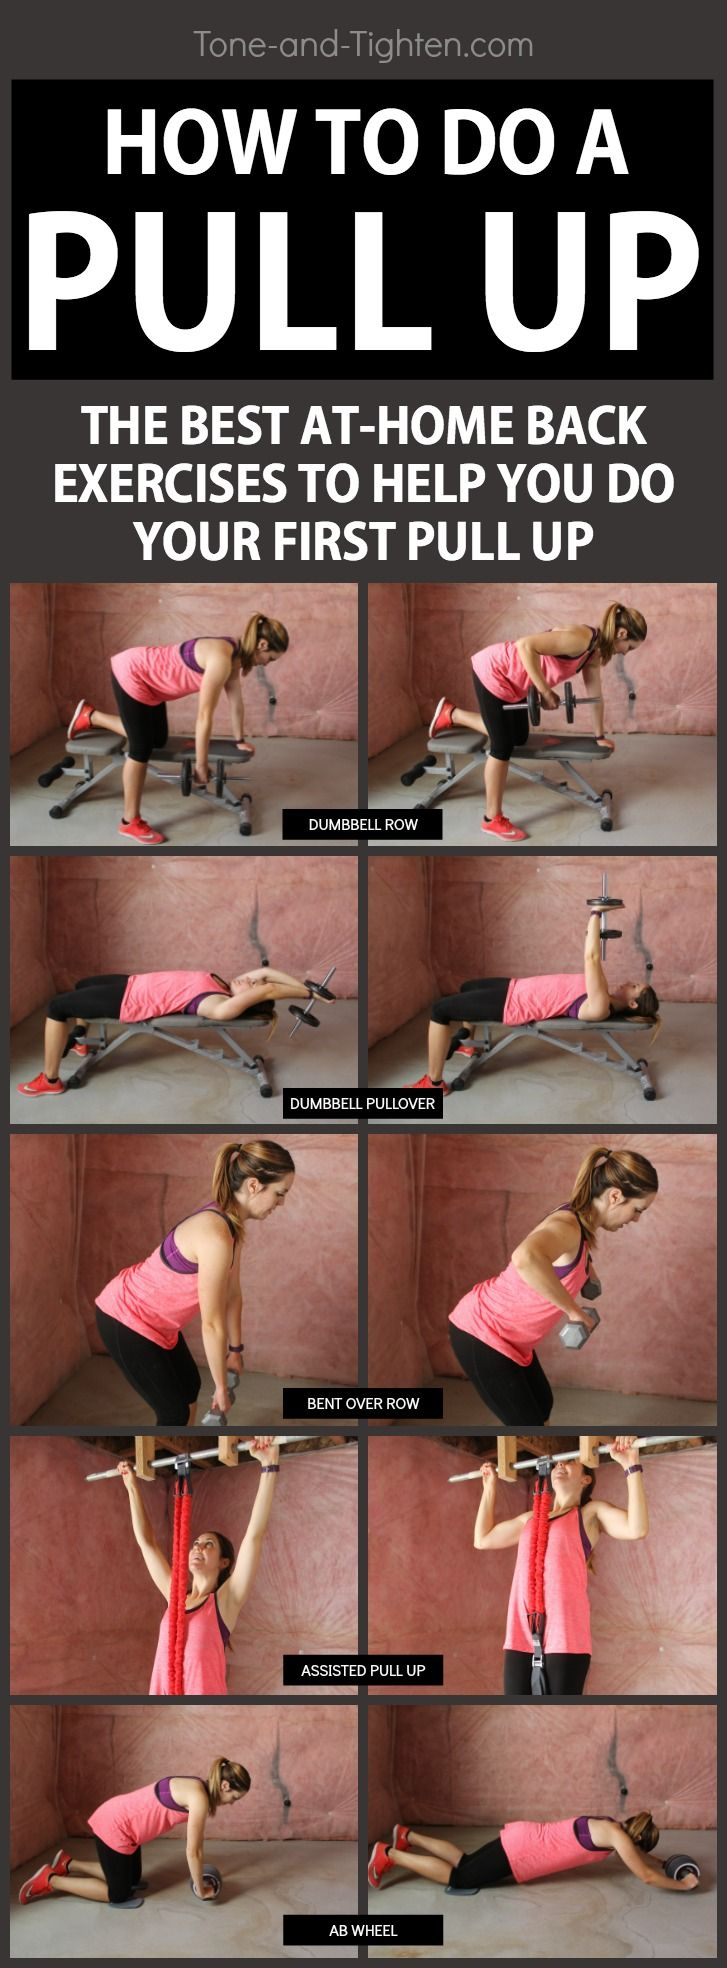 5 of the best exercises to help you do your first pull up - At-home workout from Tone-and-Tighten.com